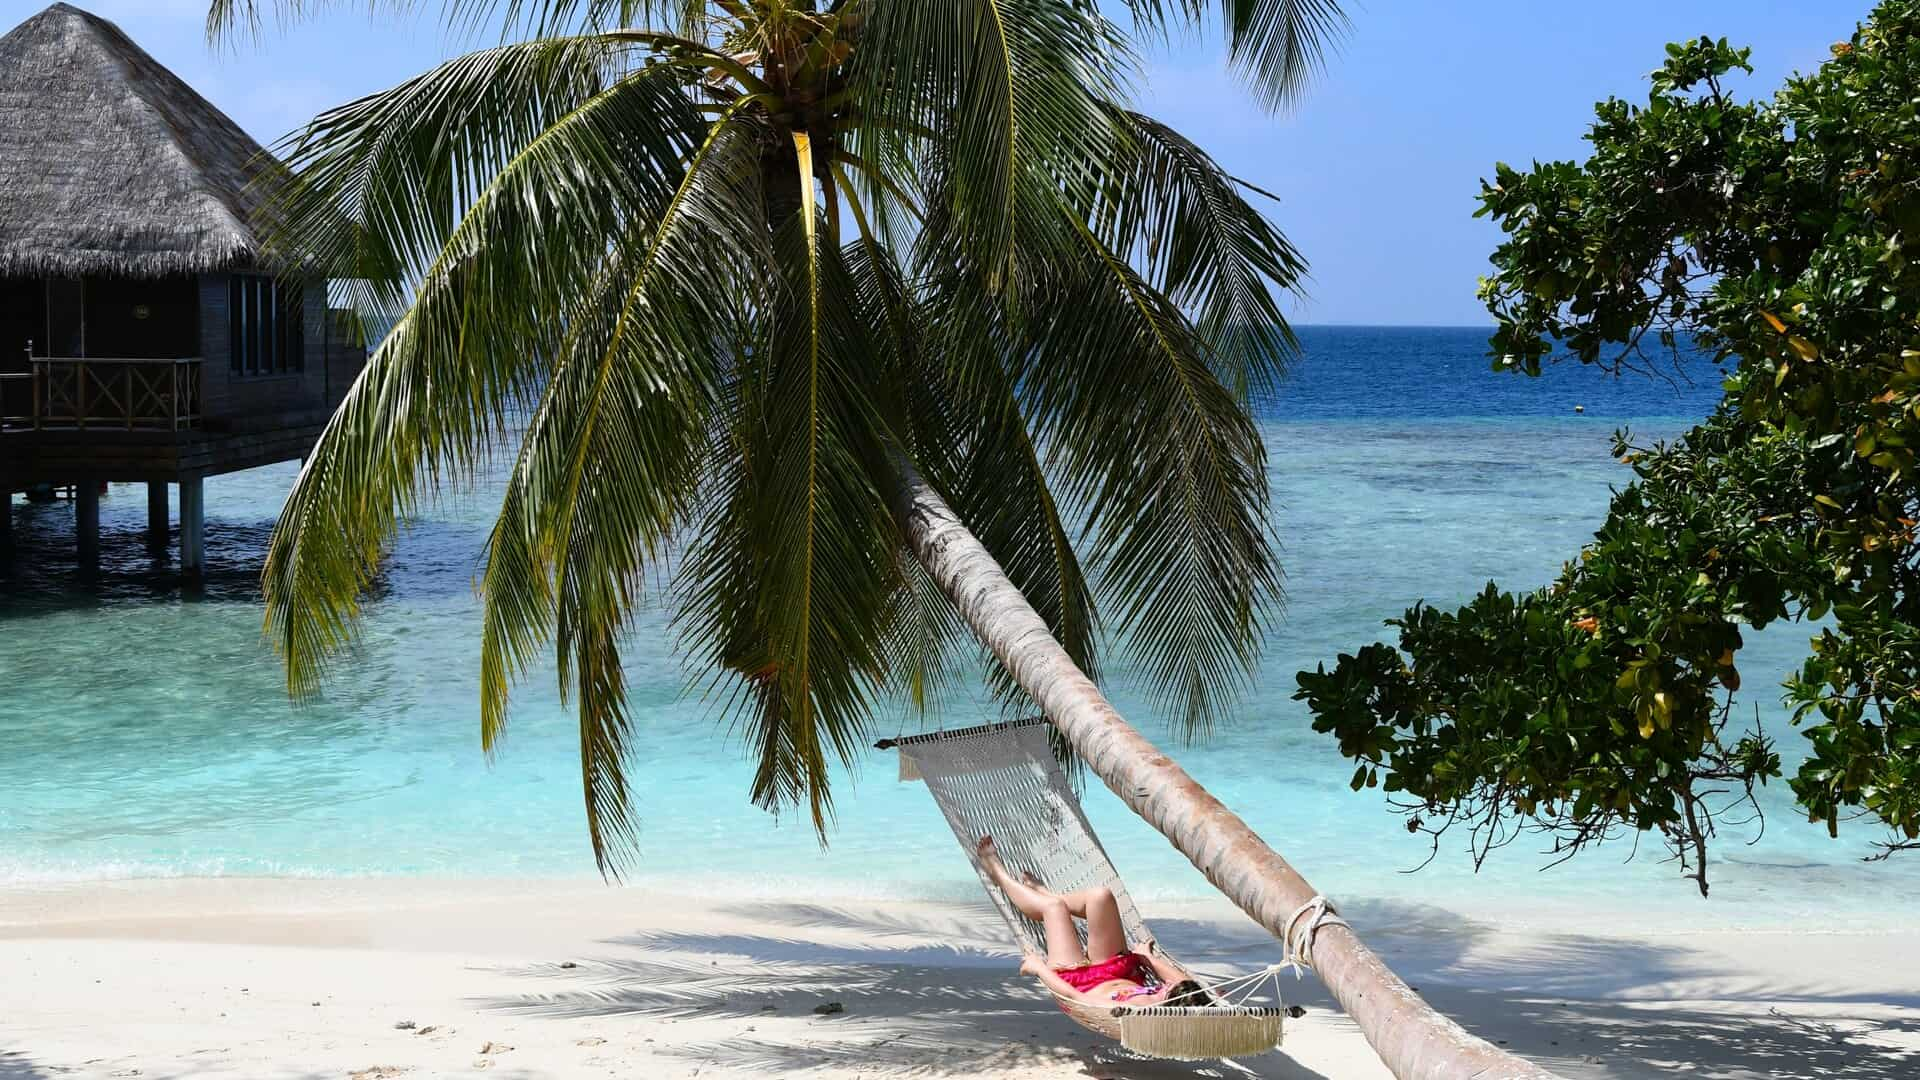 Vacationer on a hammock under a palm tree in the Maldives